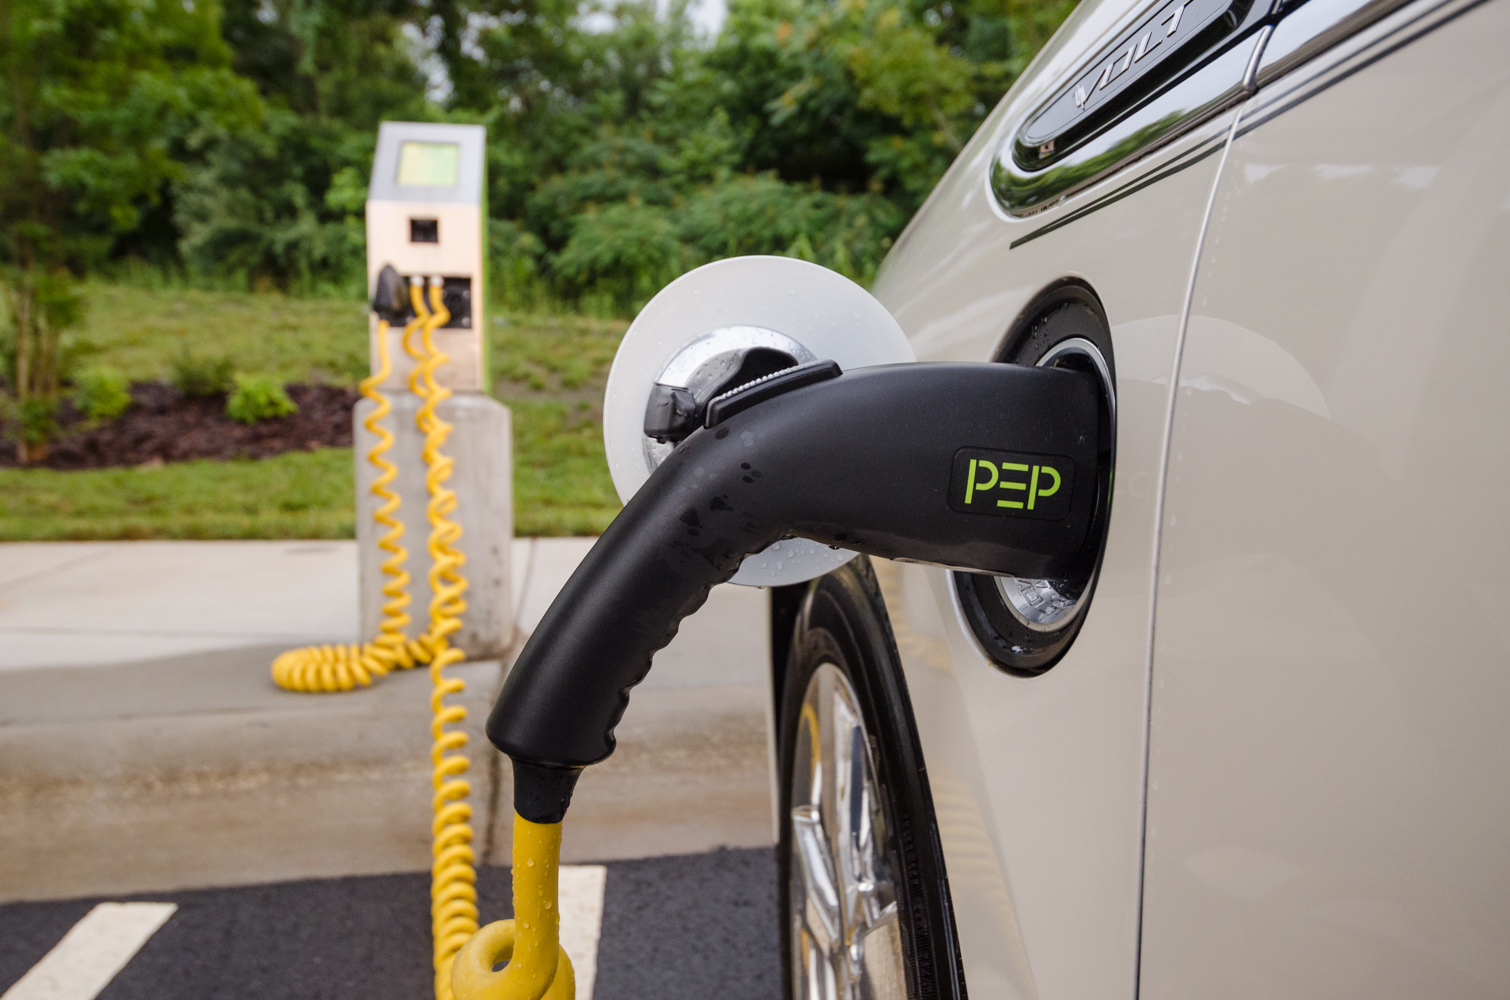 This hybrid Chevy Volt is being charged at a pep charging station that takes advantage of solar panels on the canopy overhead.